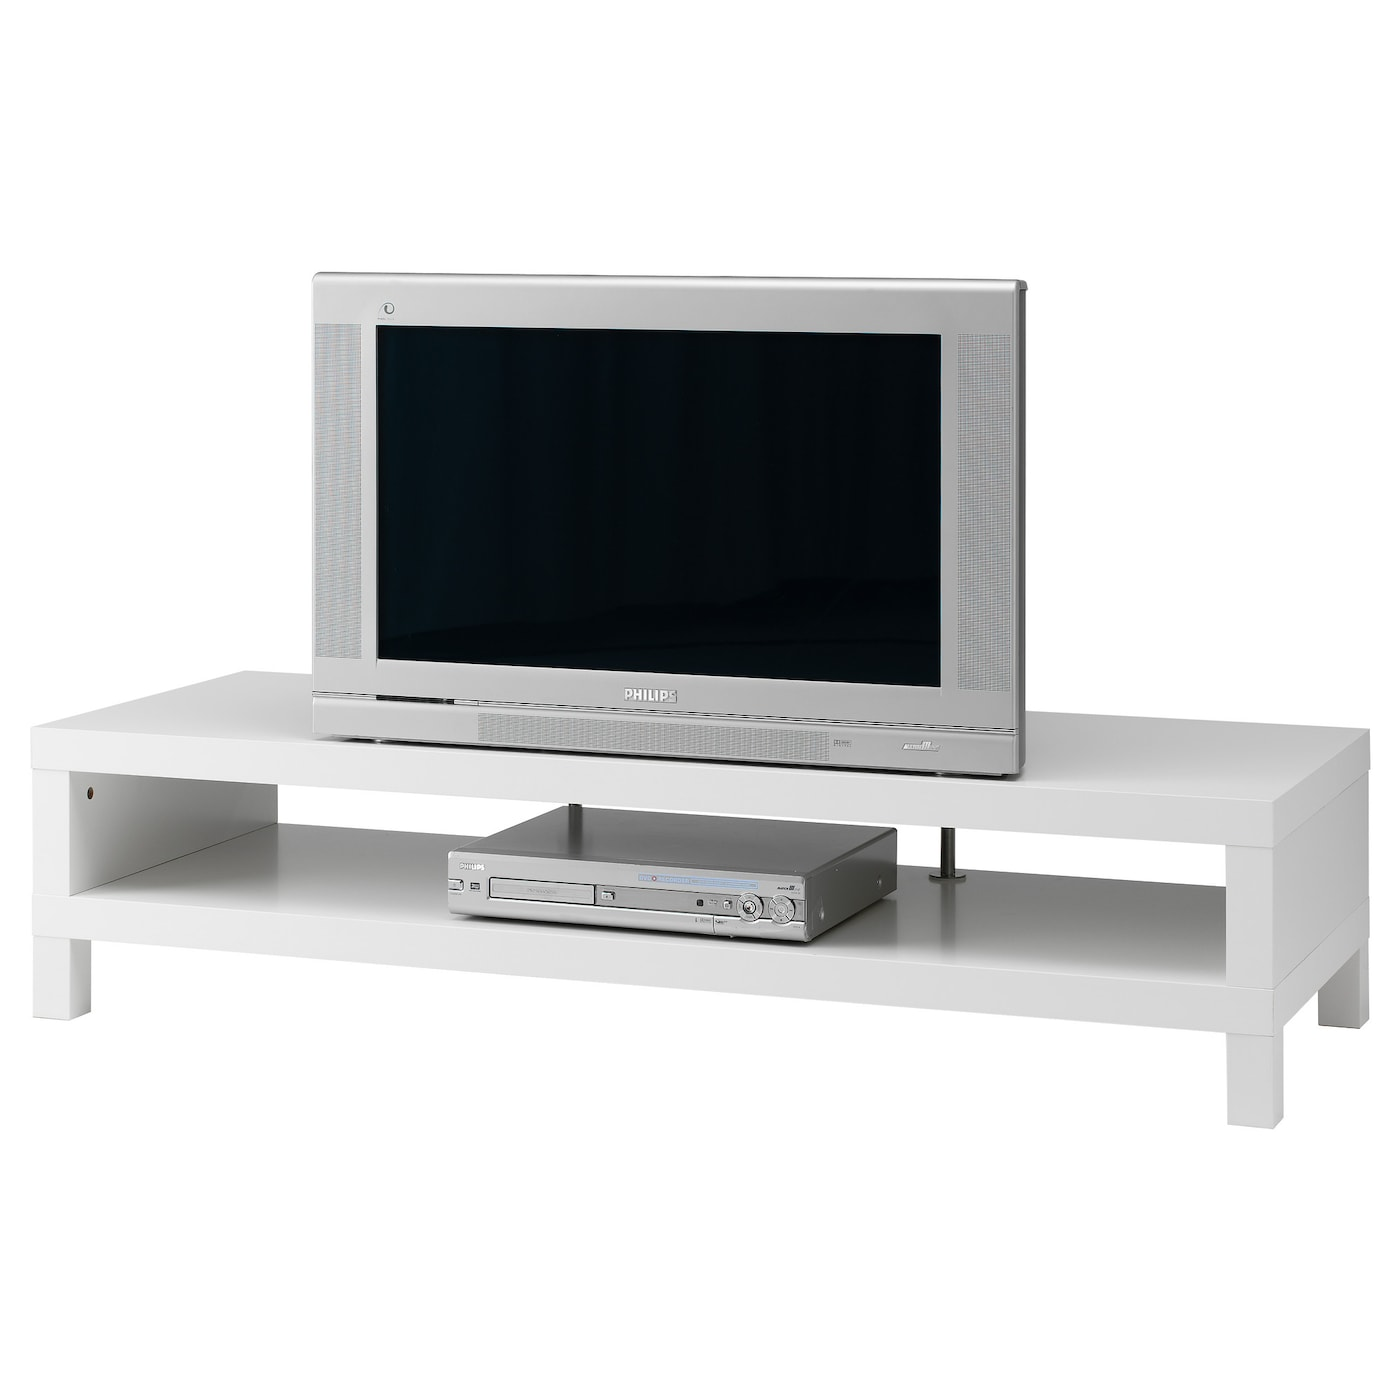 Meuble Tv Ikea Malme - Tv Tables Tv Benches Ikea[mjhdah]https://www.ikea.com/PIAimages/59638_PE165526_S5.JPG